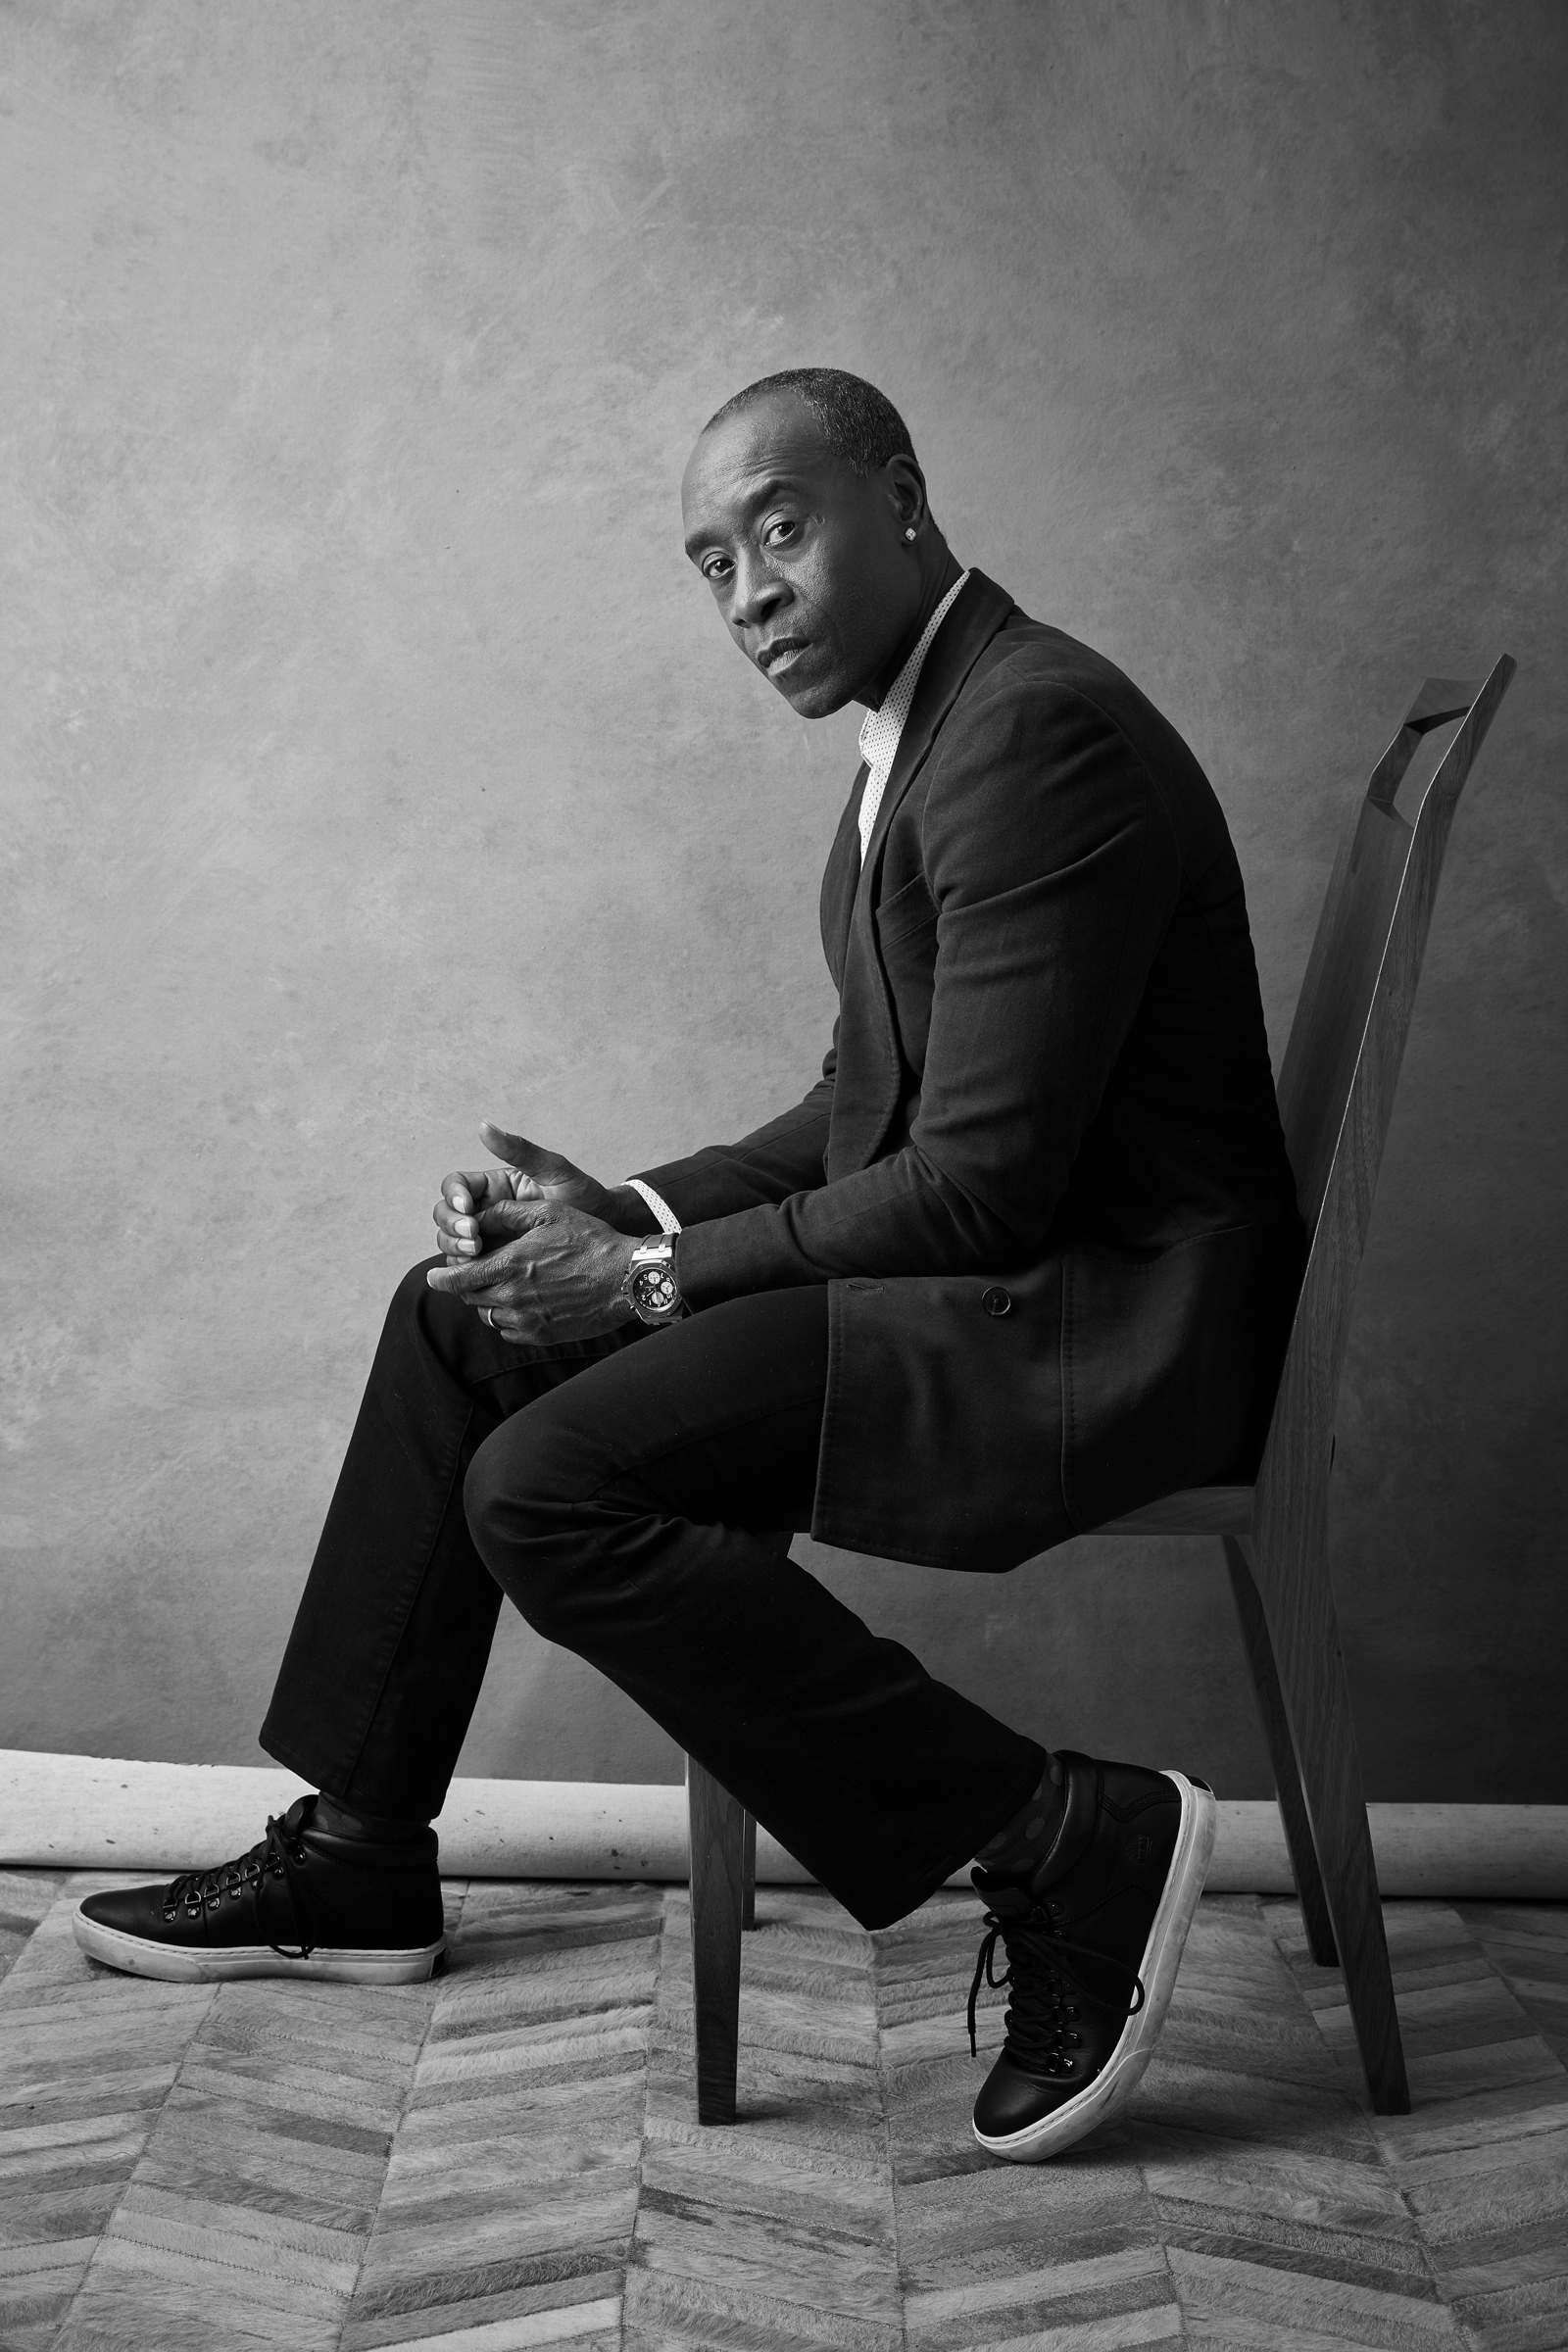 20190116_Esquire_DonCheadle1982_BW.jpg